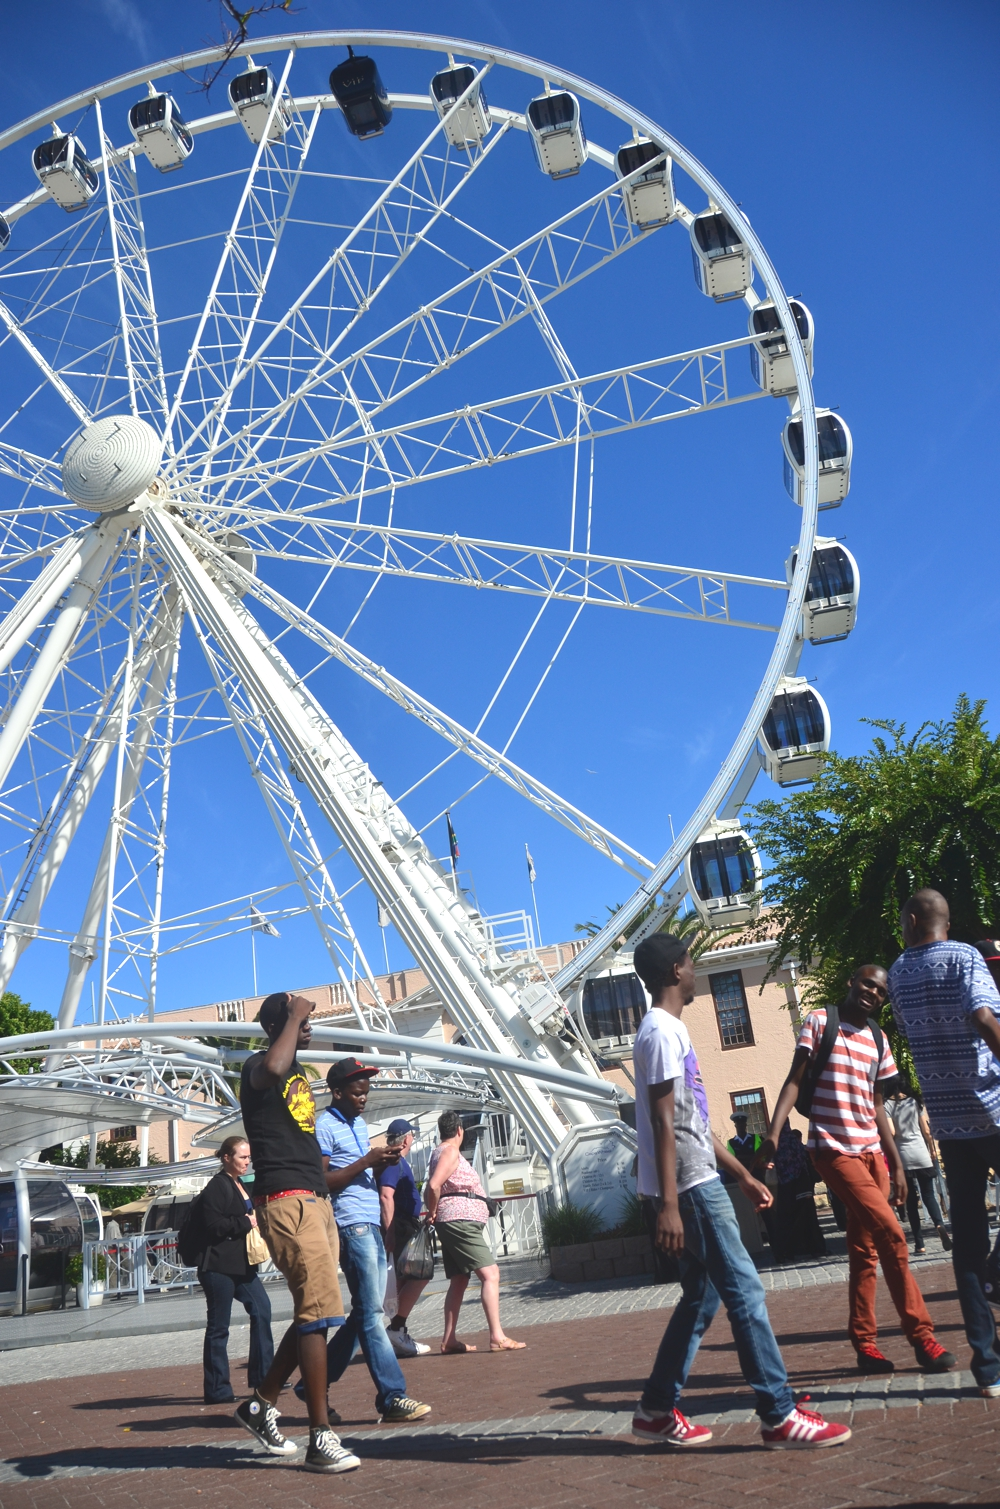 The V&A Waterfront is carefree and pleasant, in spite of how touristy it seems